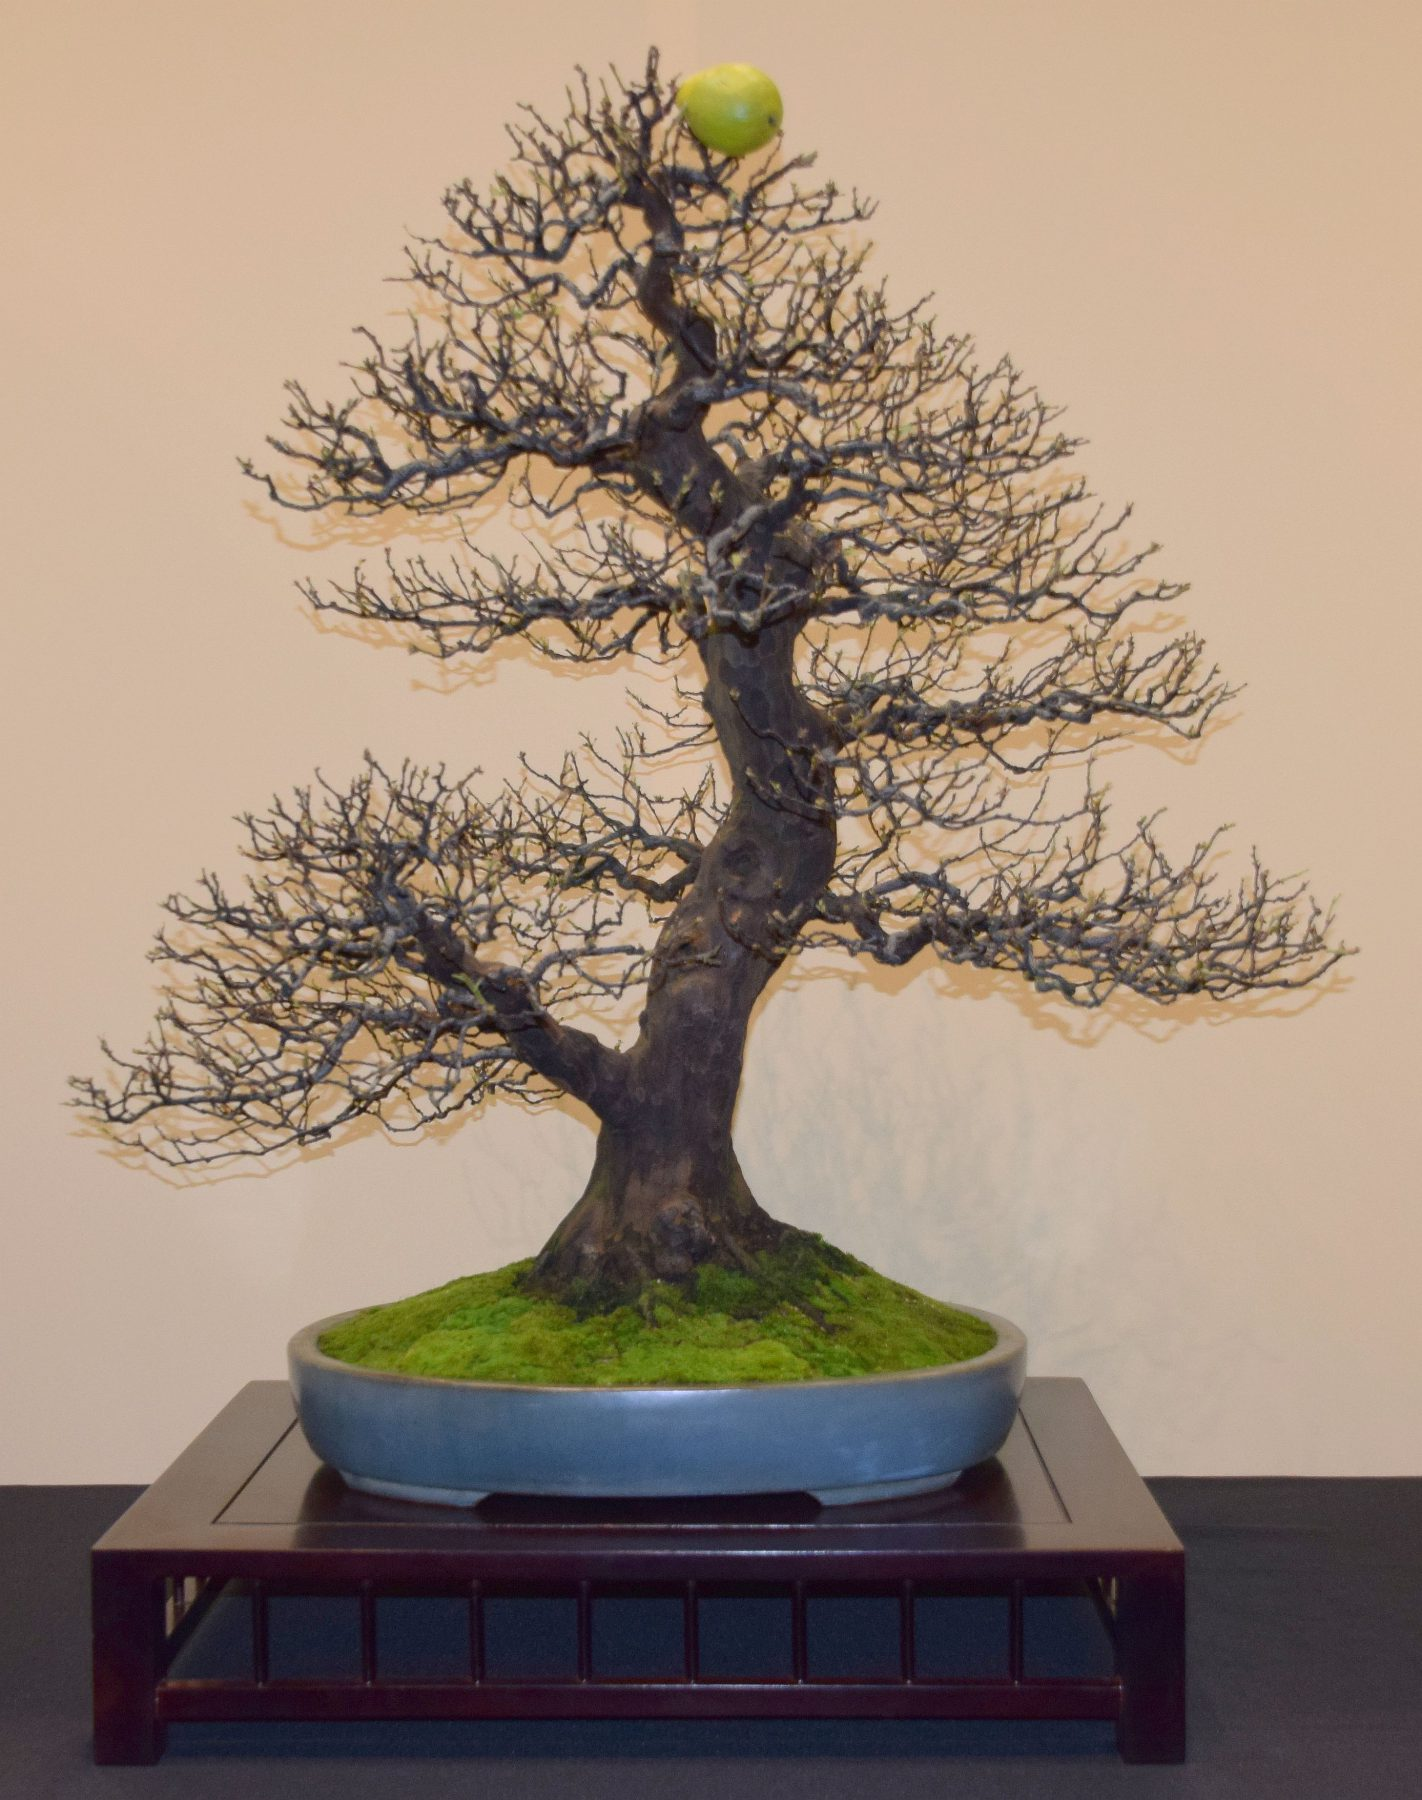 euk-bonsai-ten-2016-jp-polmans-collectie-008